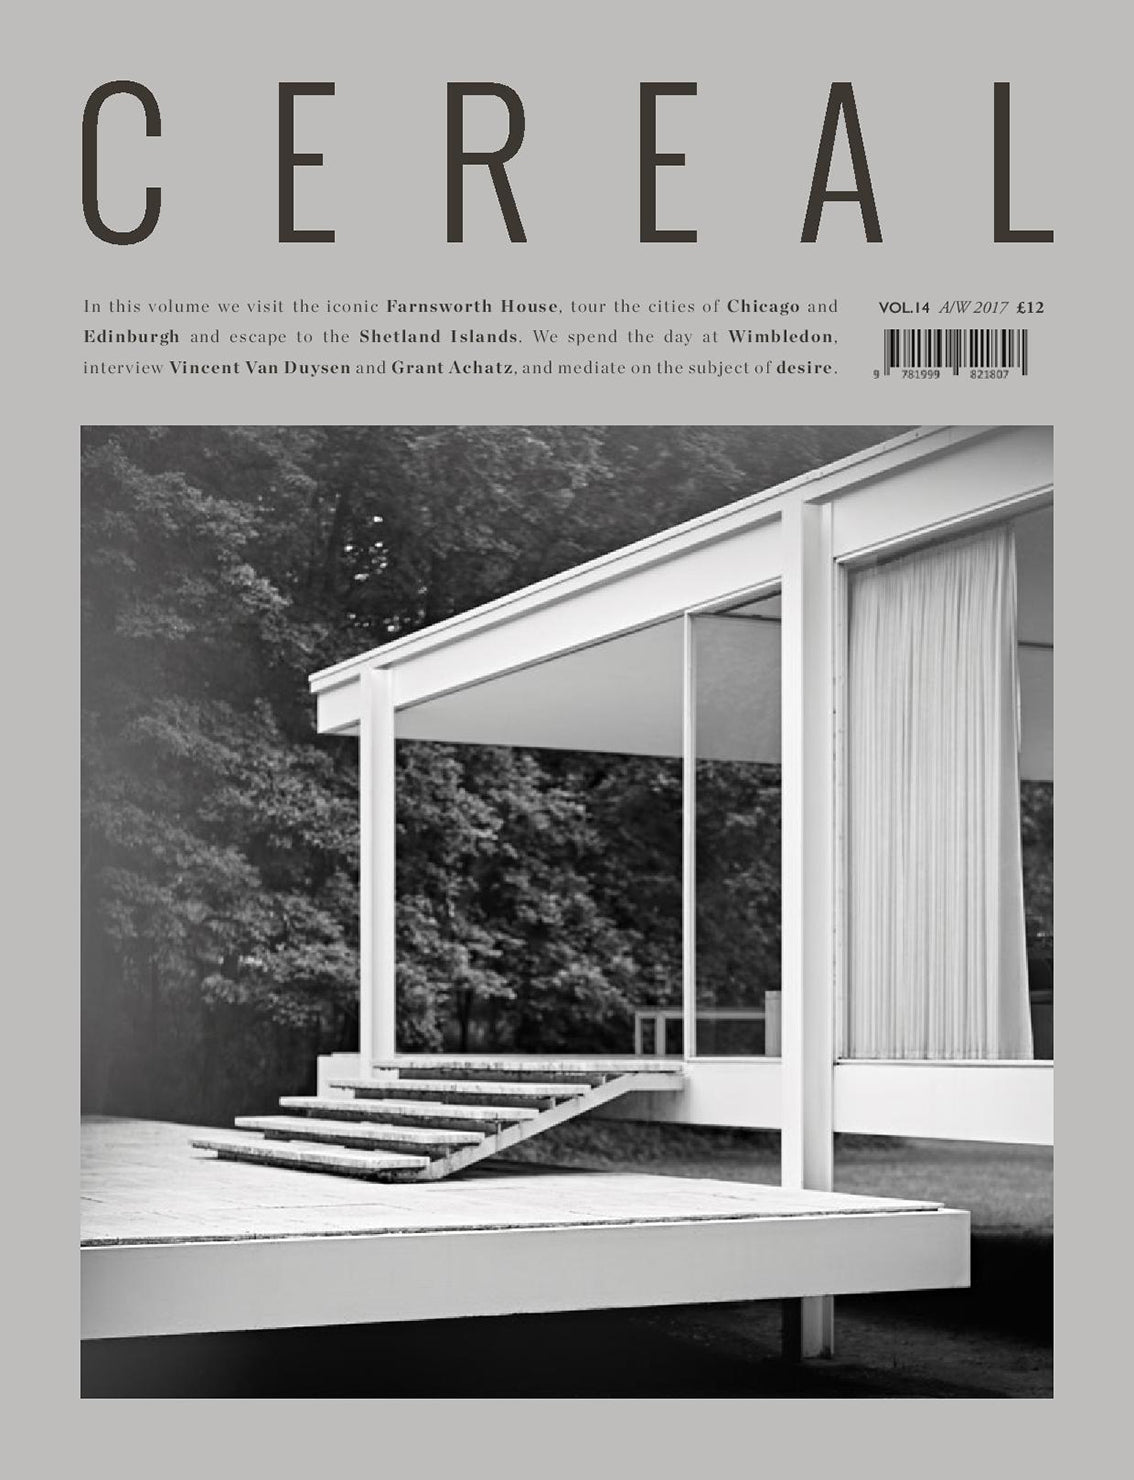 Cereal Magazine – Vol. 14